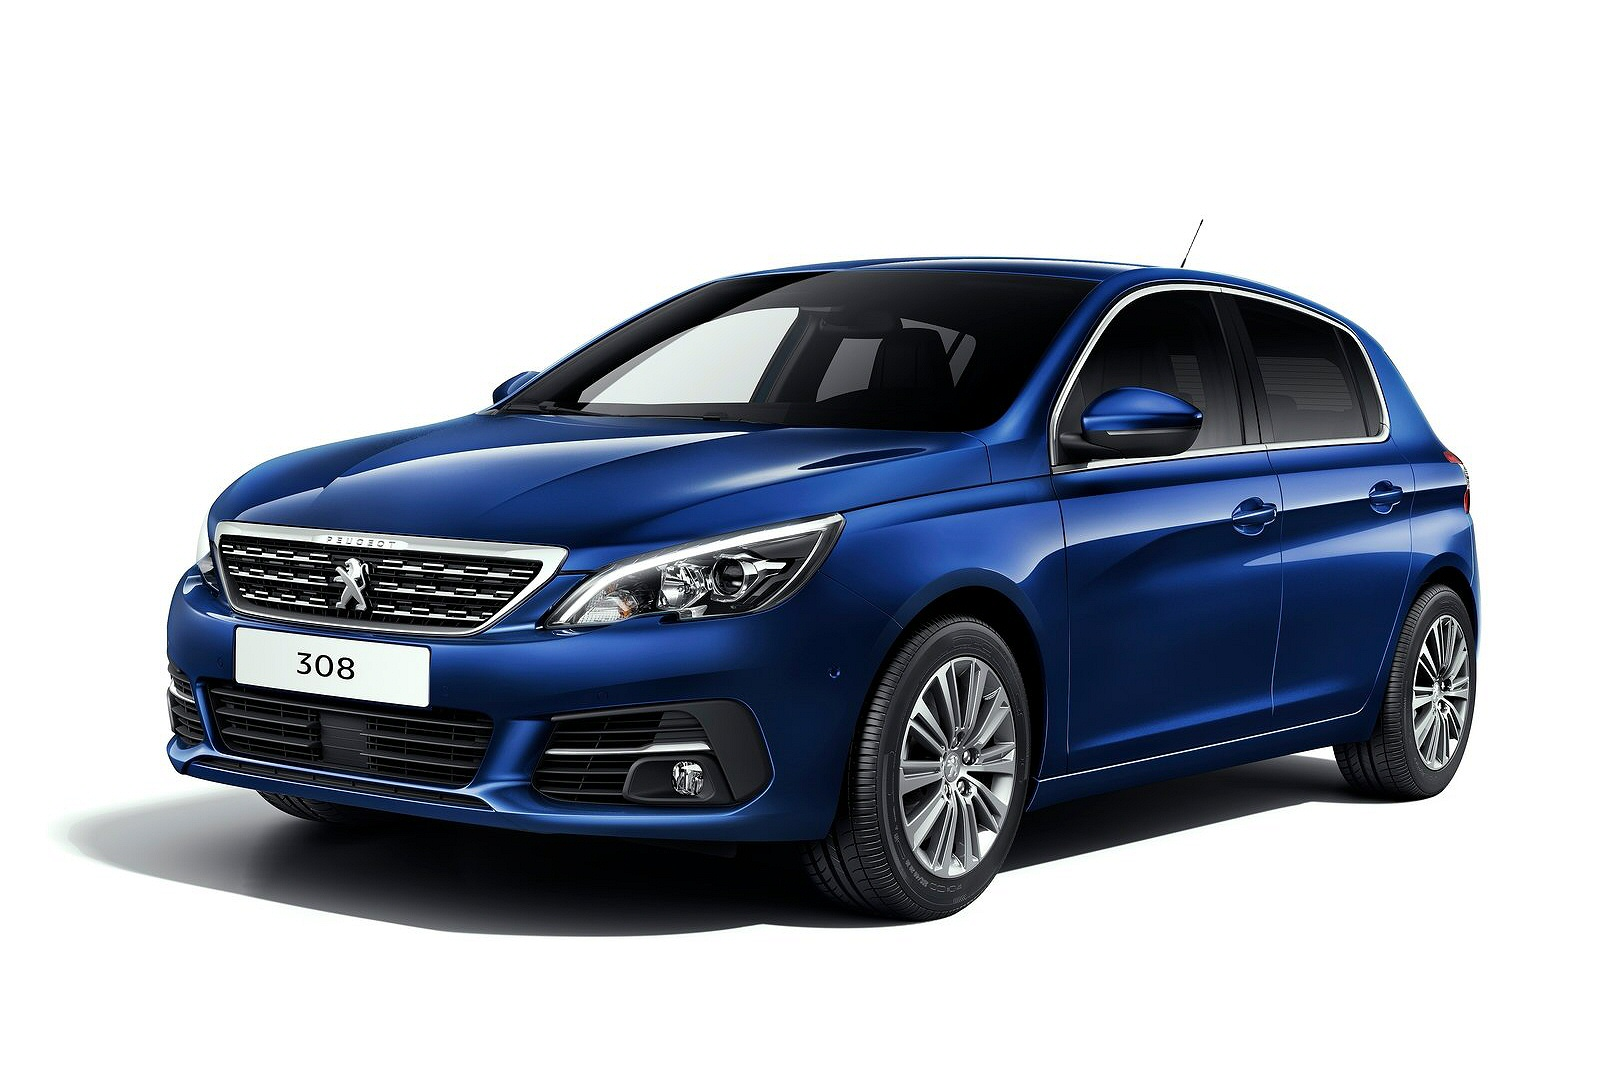 new peugeot 308 1 5 bluehdi 130 tech edition 5dr diesel hatchback for sale bristol street. Black Bedroom Furniture Sets. Home Design Ideas